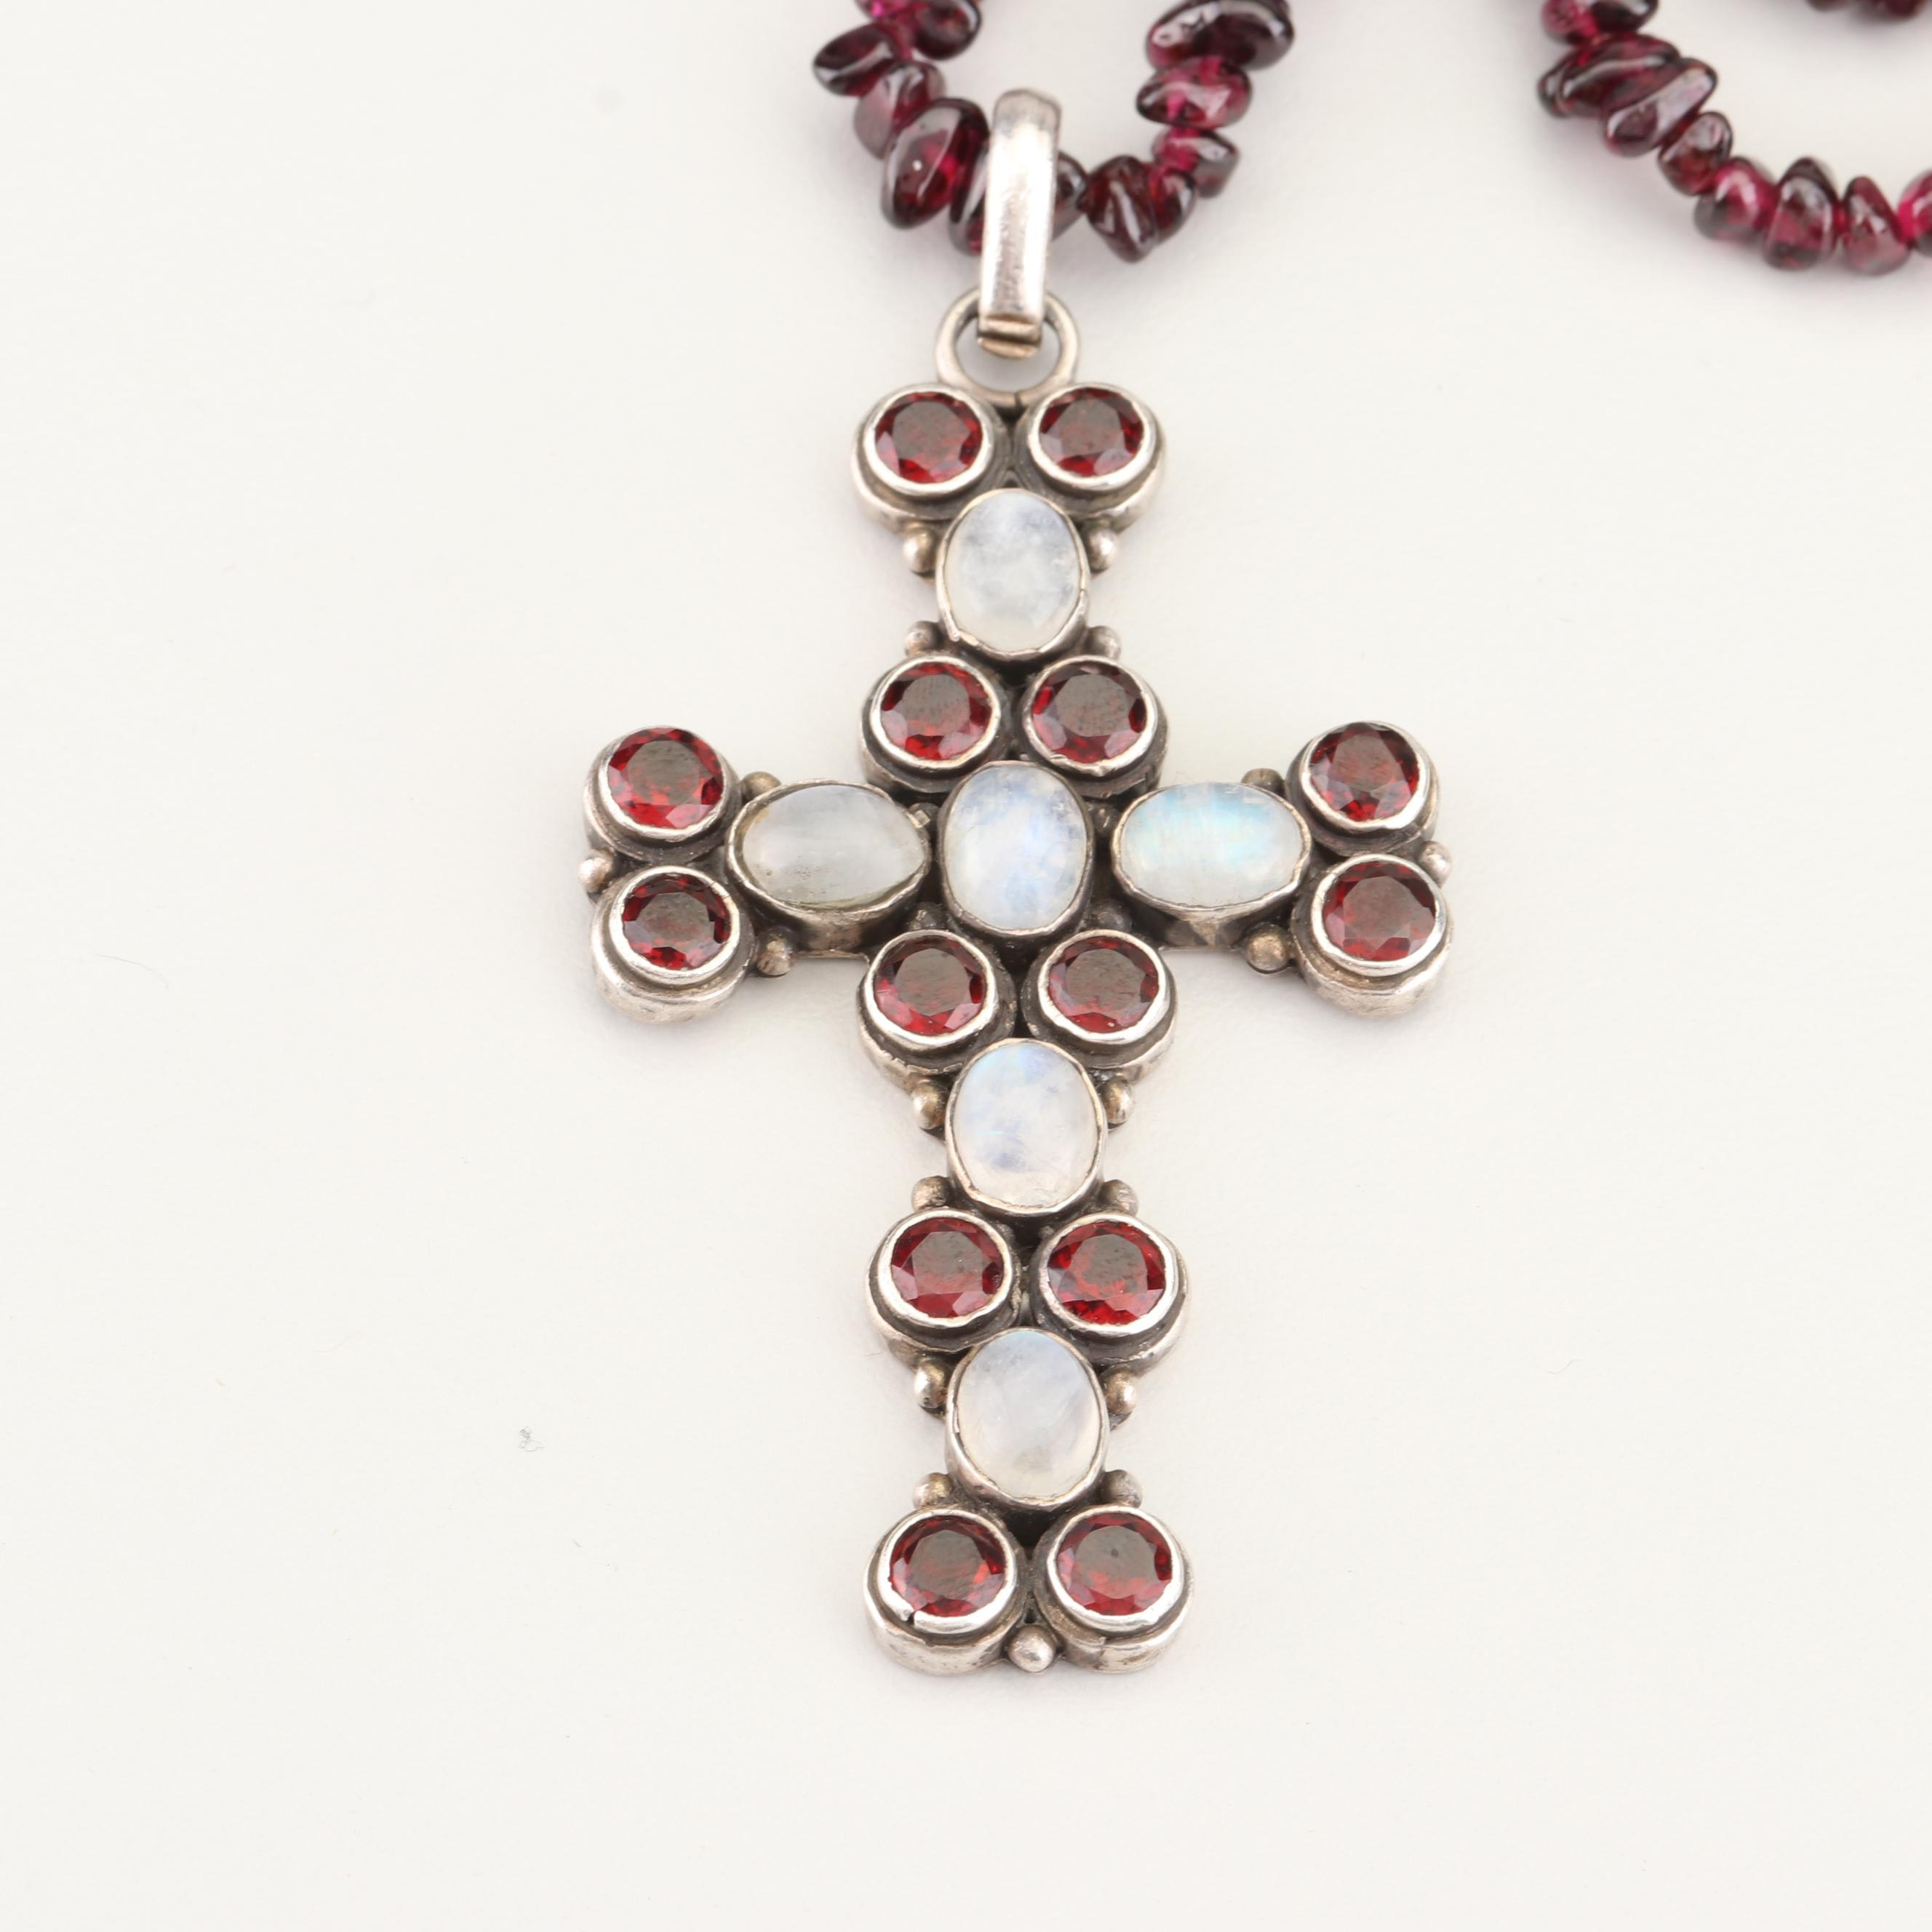 Sterling Silver Moonstone and Garnet Cross Pendant on Rhodolite Garnet Necklace